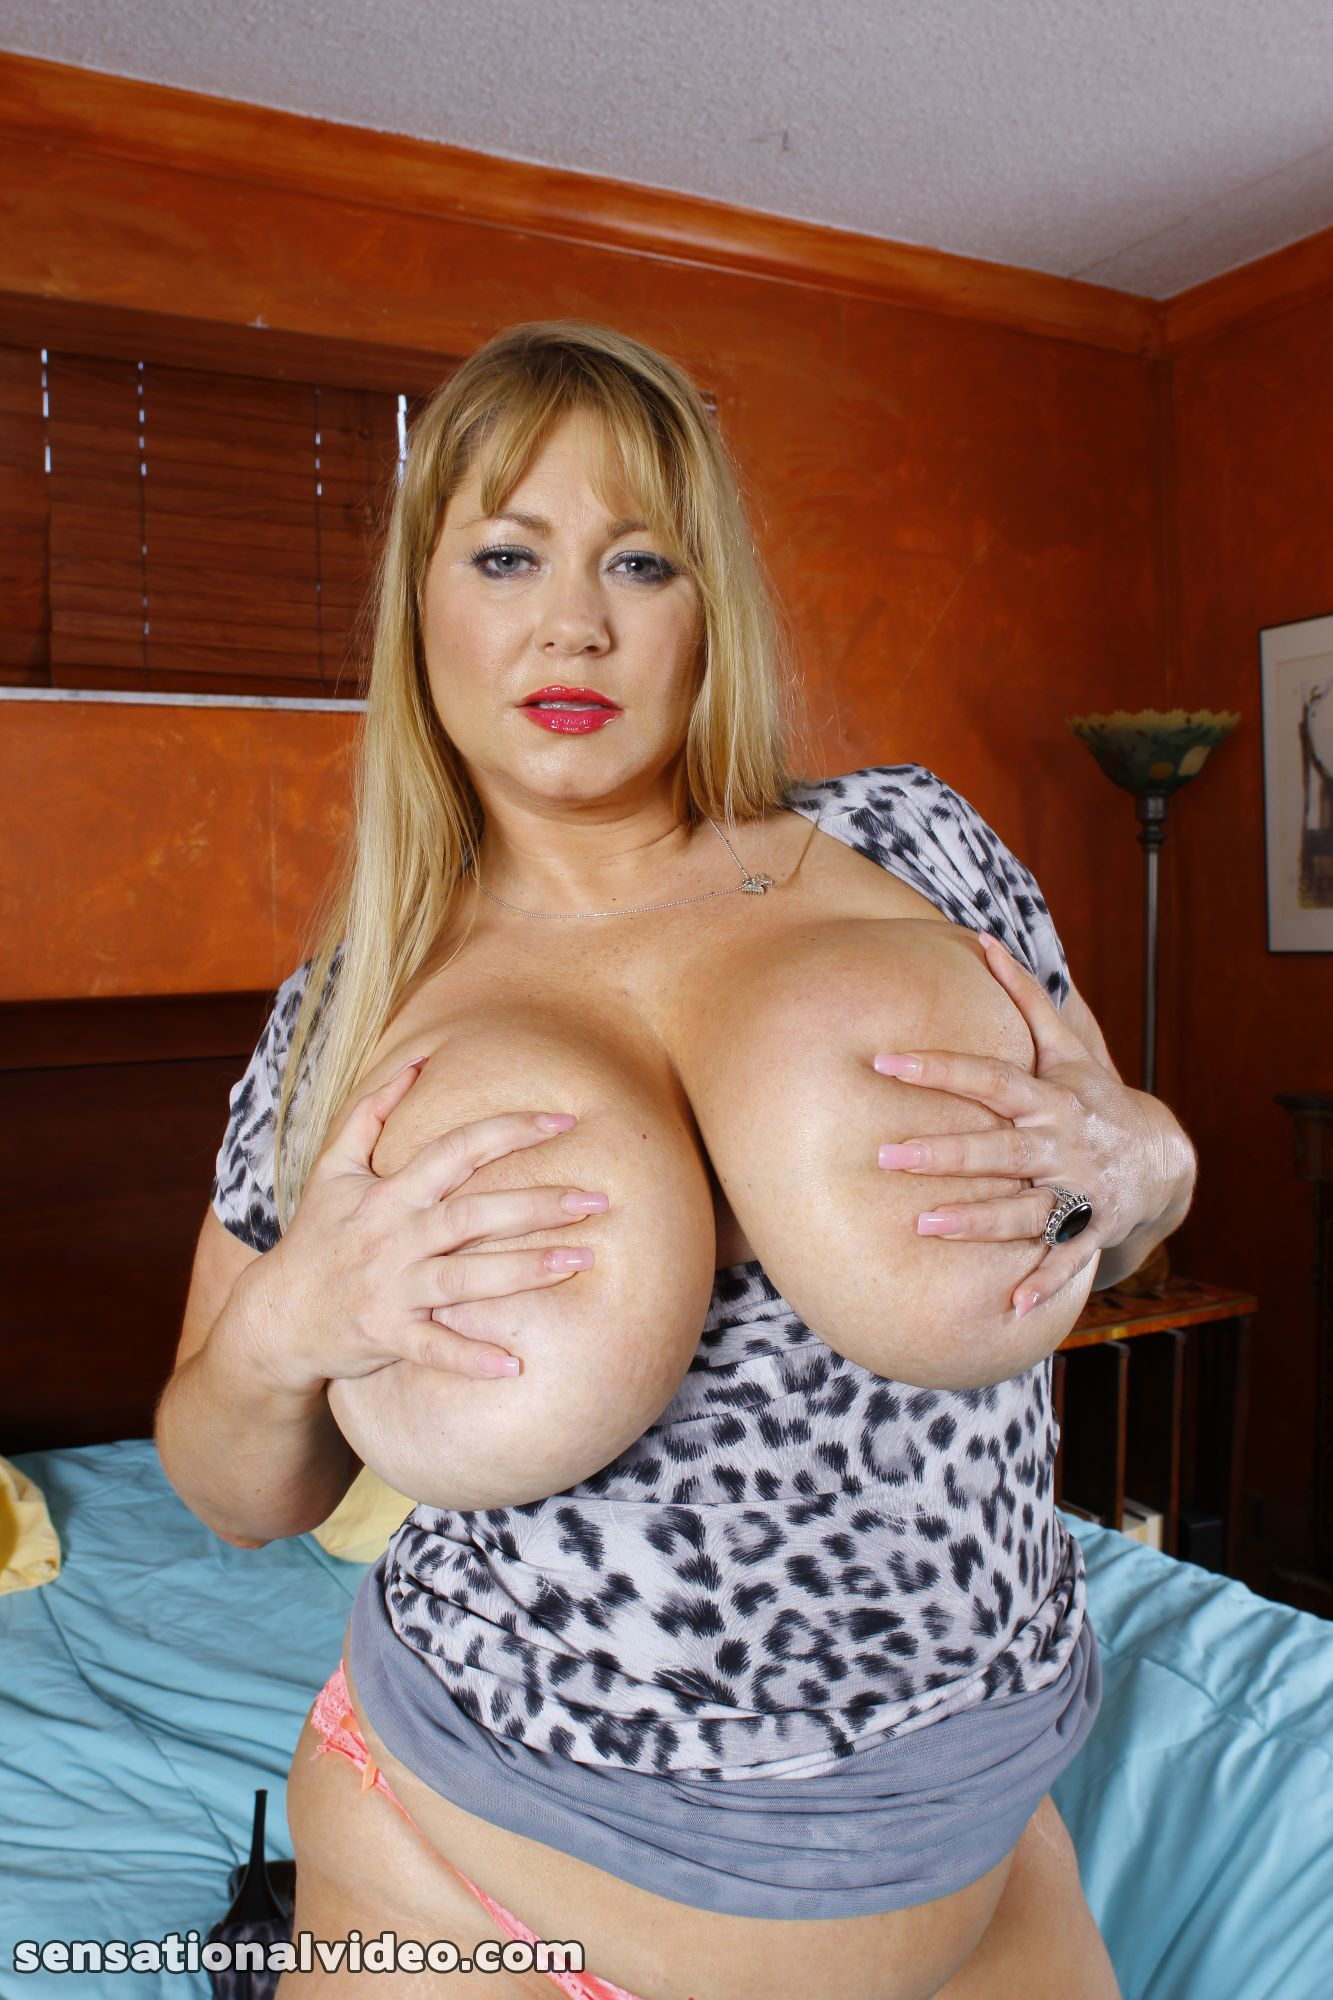 lesgalls spicytitties plumperpass gal538 pic 9